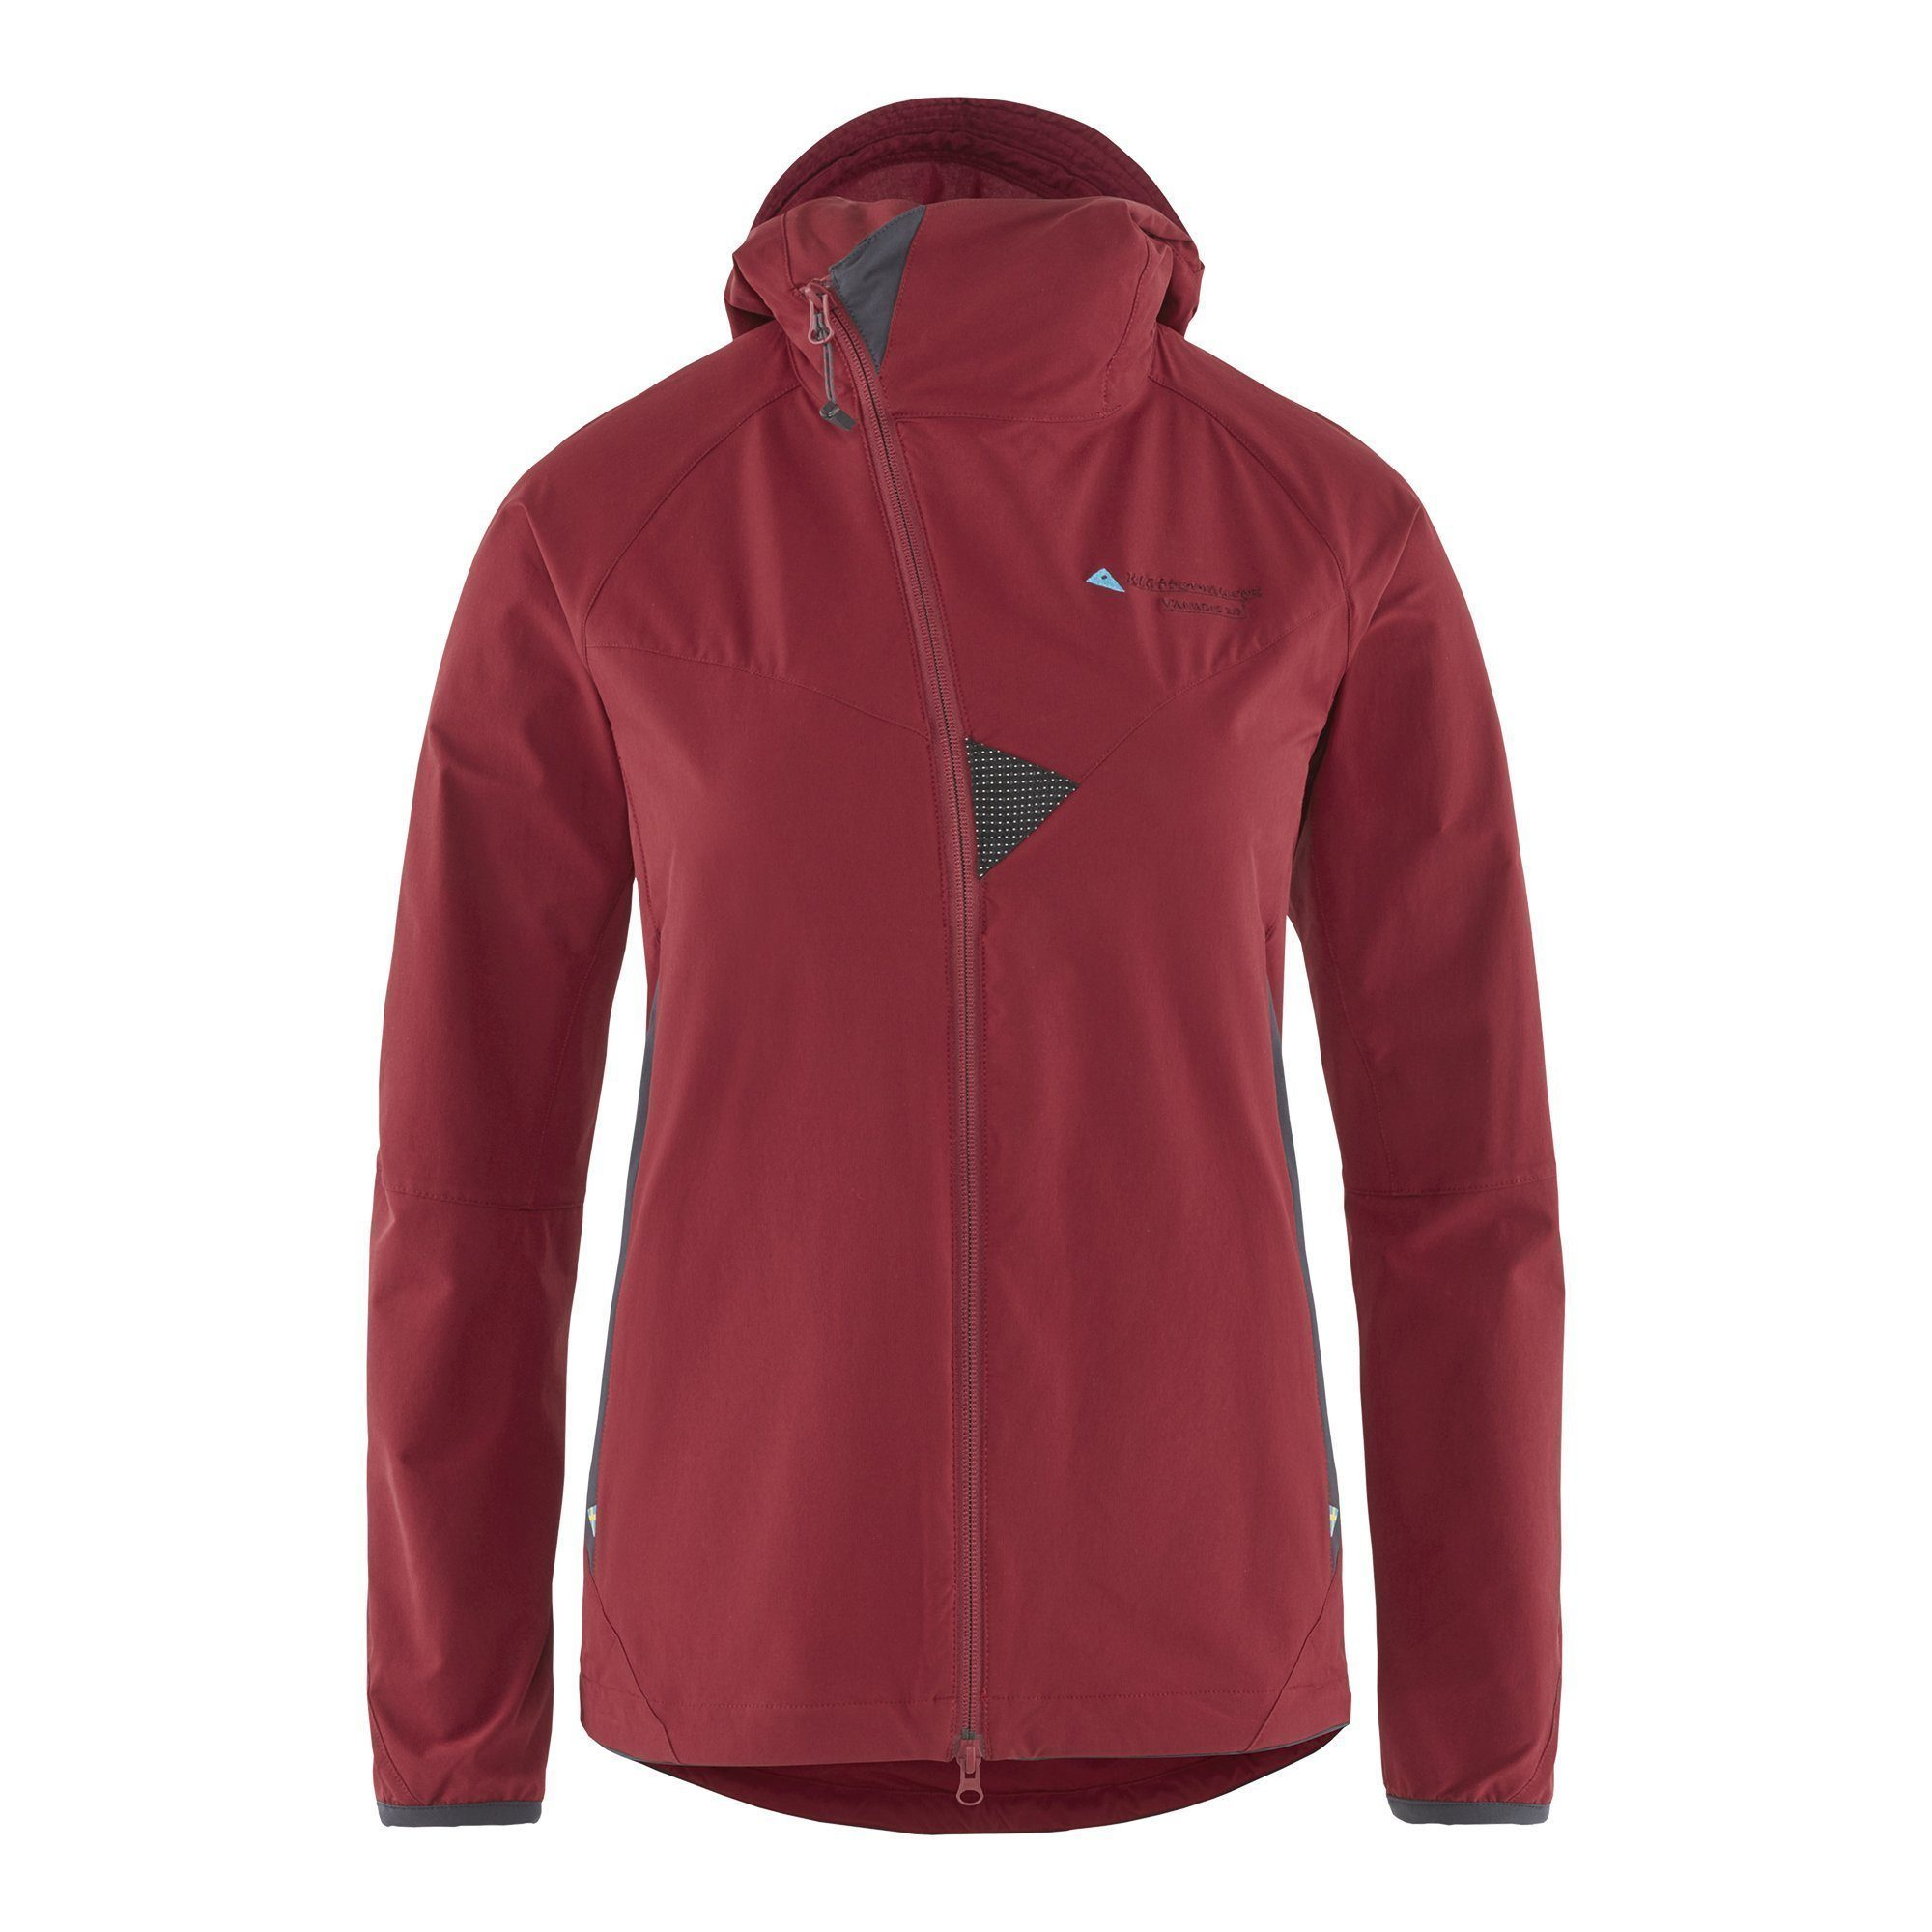 Klättermusen - Women's Vanadis 2.0 Jacket  - Windproof - Water Repellent - Recycled Polyamide - Weekendbee - sustainable sportswear